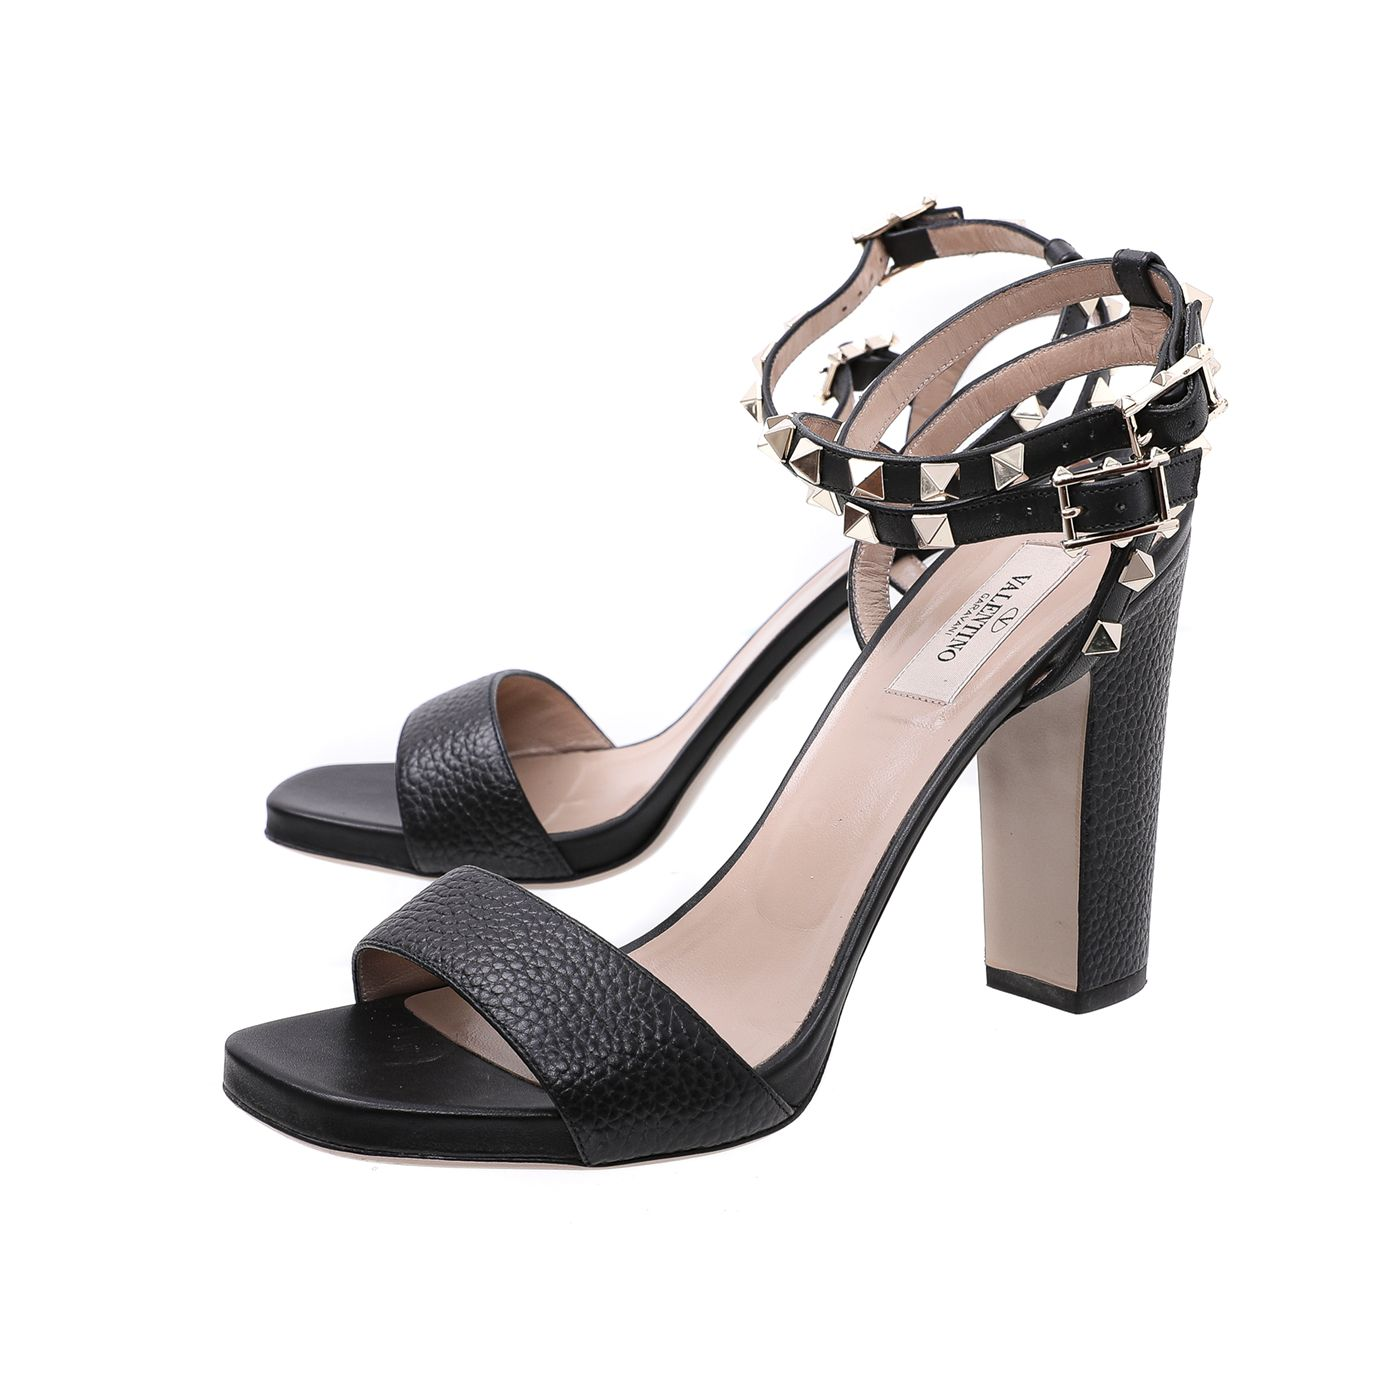 Valentino Black Rockstuds Double Ankle Strap Sandals 39